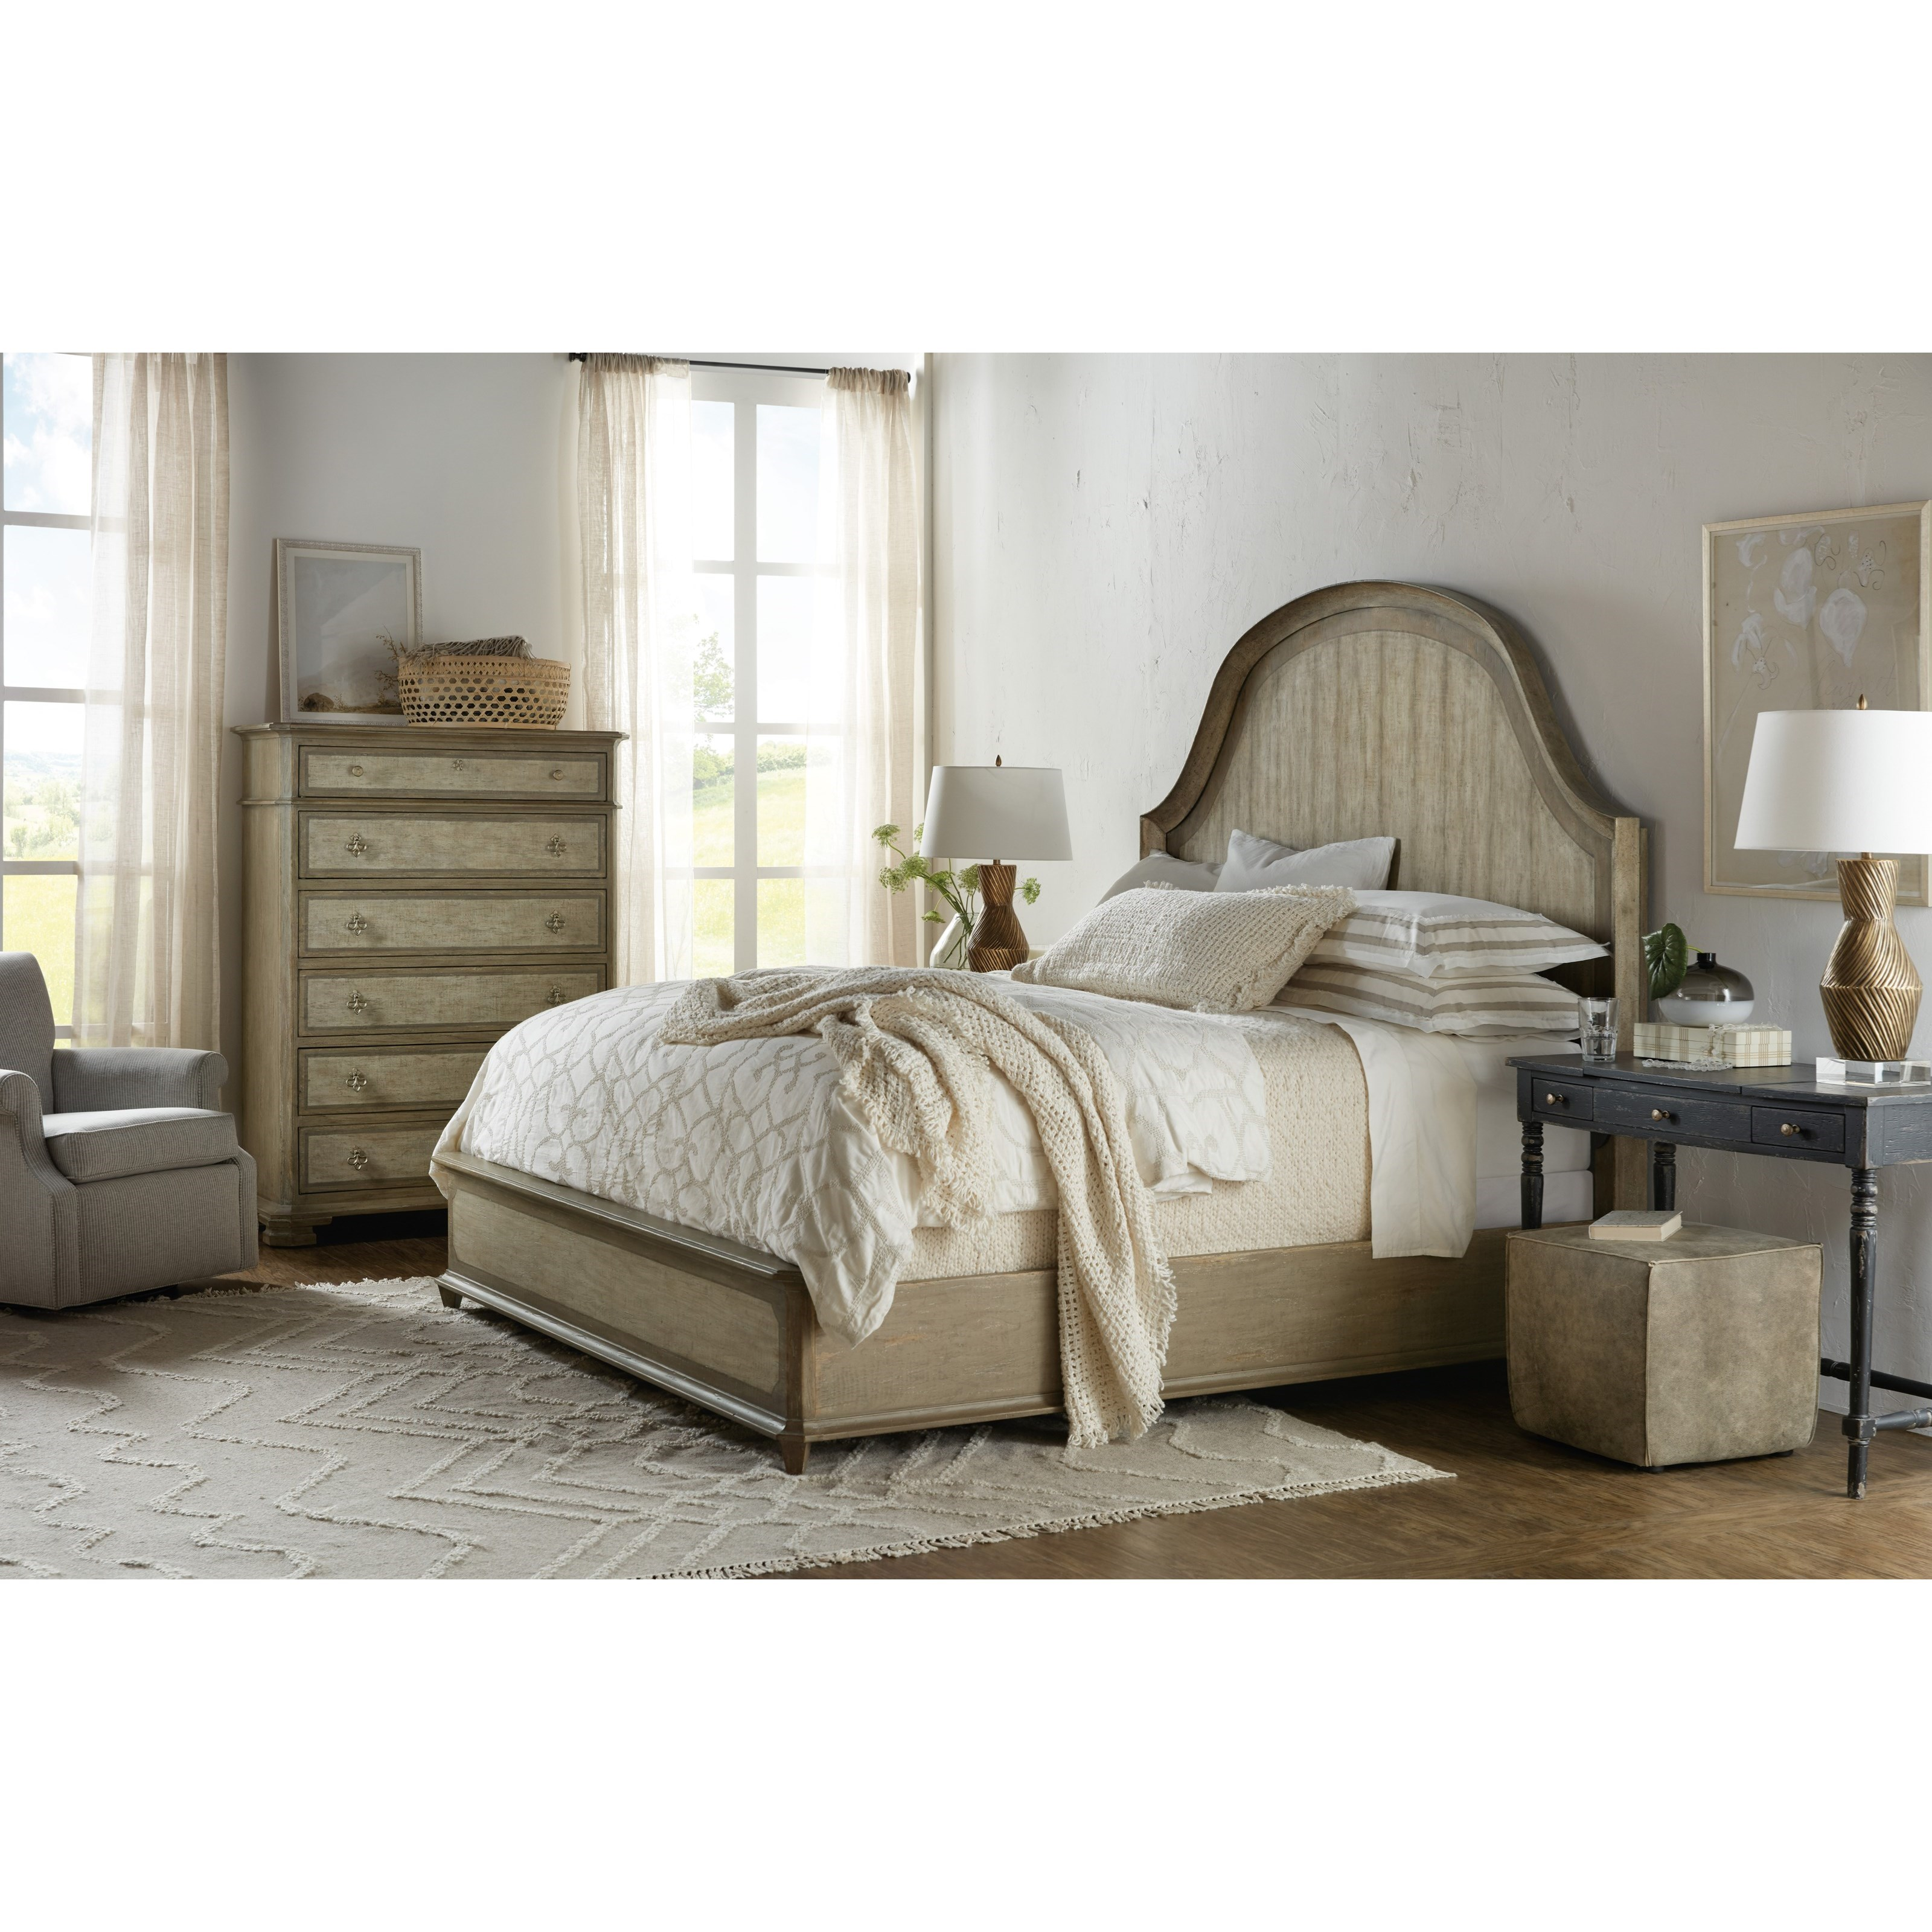 Alfresco Queen Bedroom Group by Hooker Furniture at Miller Waldrop Furniture and Decor